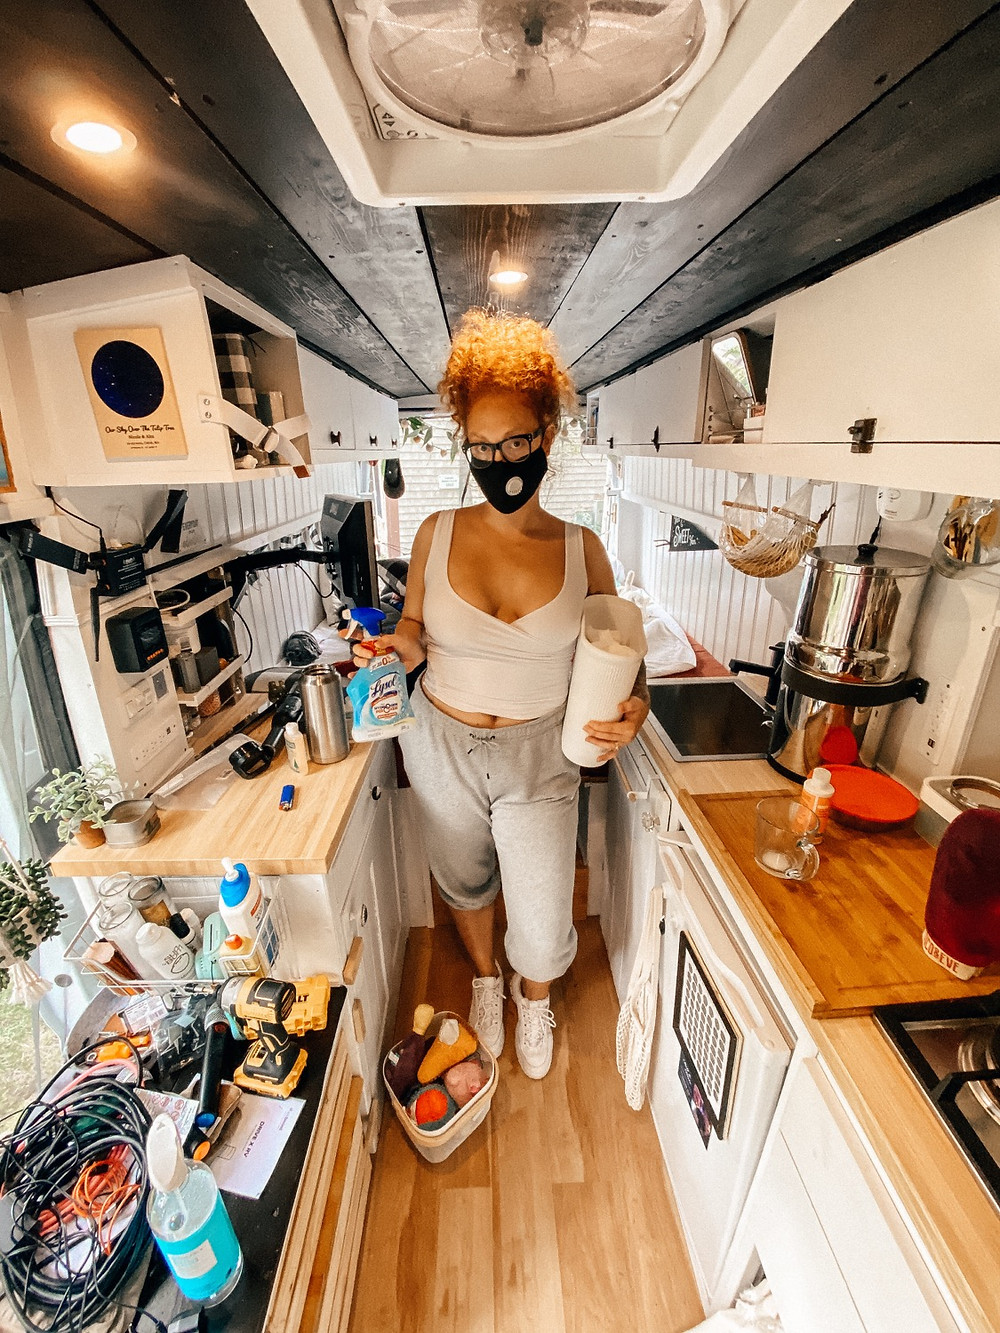 Woman in mask holding cleaner and full trashcan in camper van